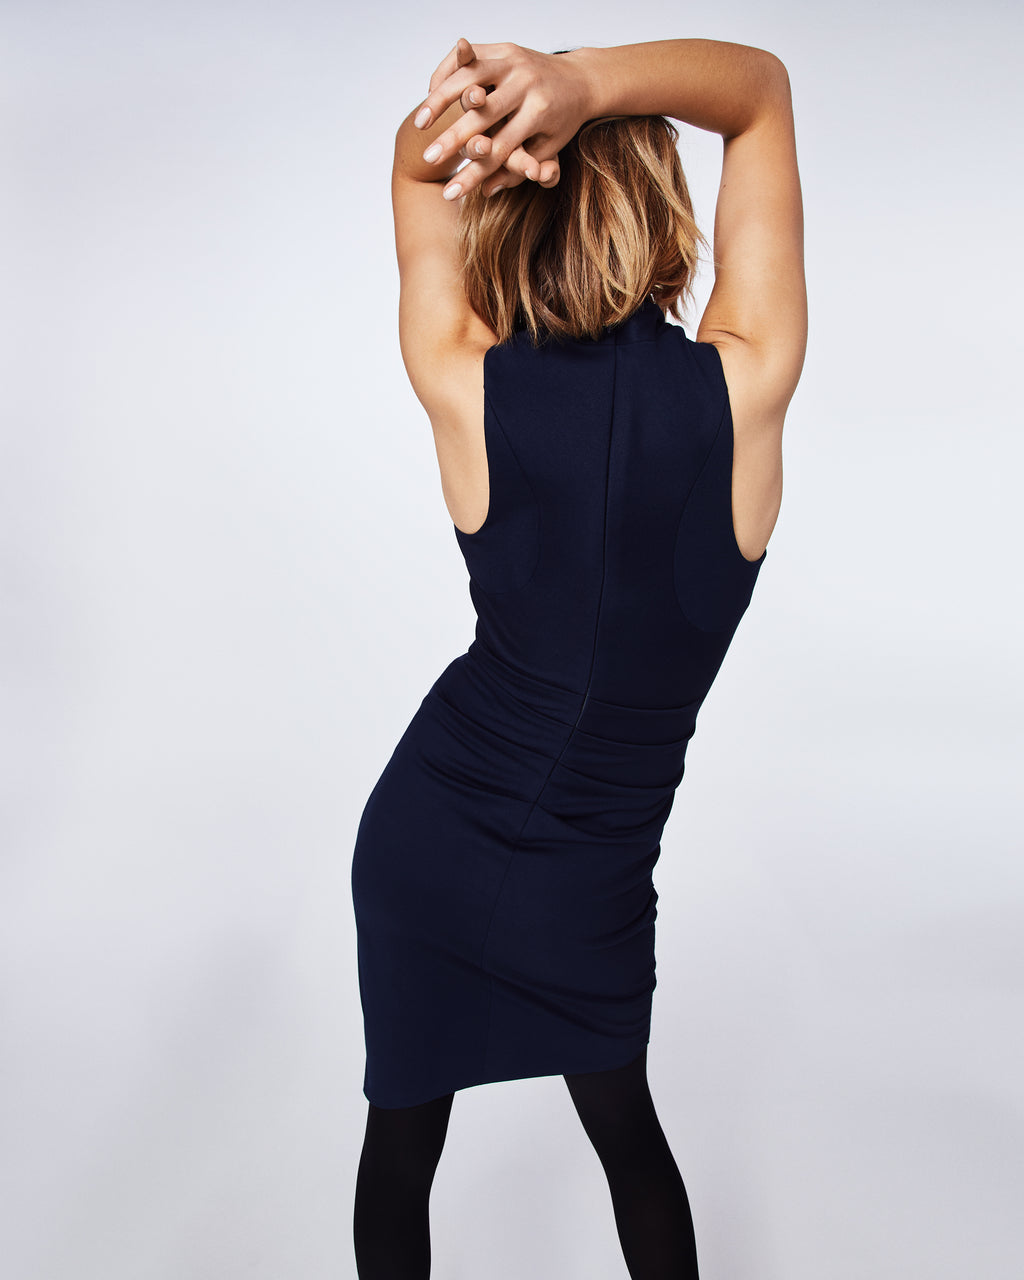 BH10424 - PONTE DRESS - dresses - short - Featuring a v-neck and faux wrap, this LBD is a wardrobe staple. This style is figure-flattering.